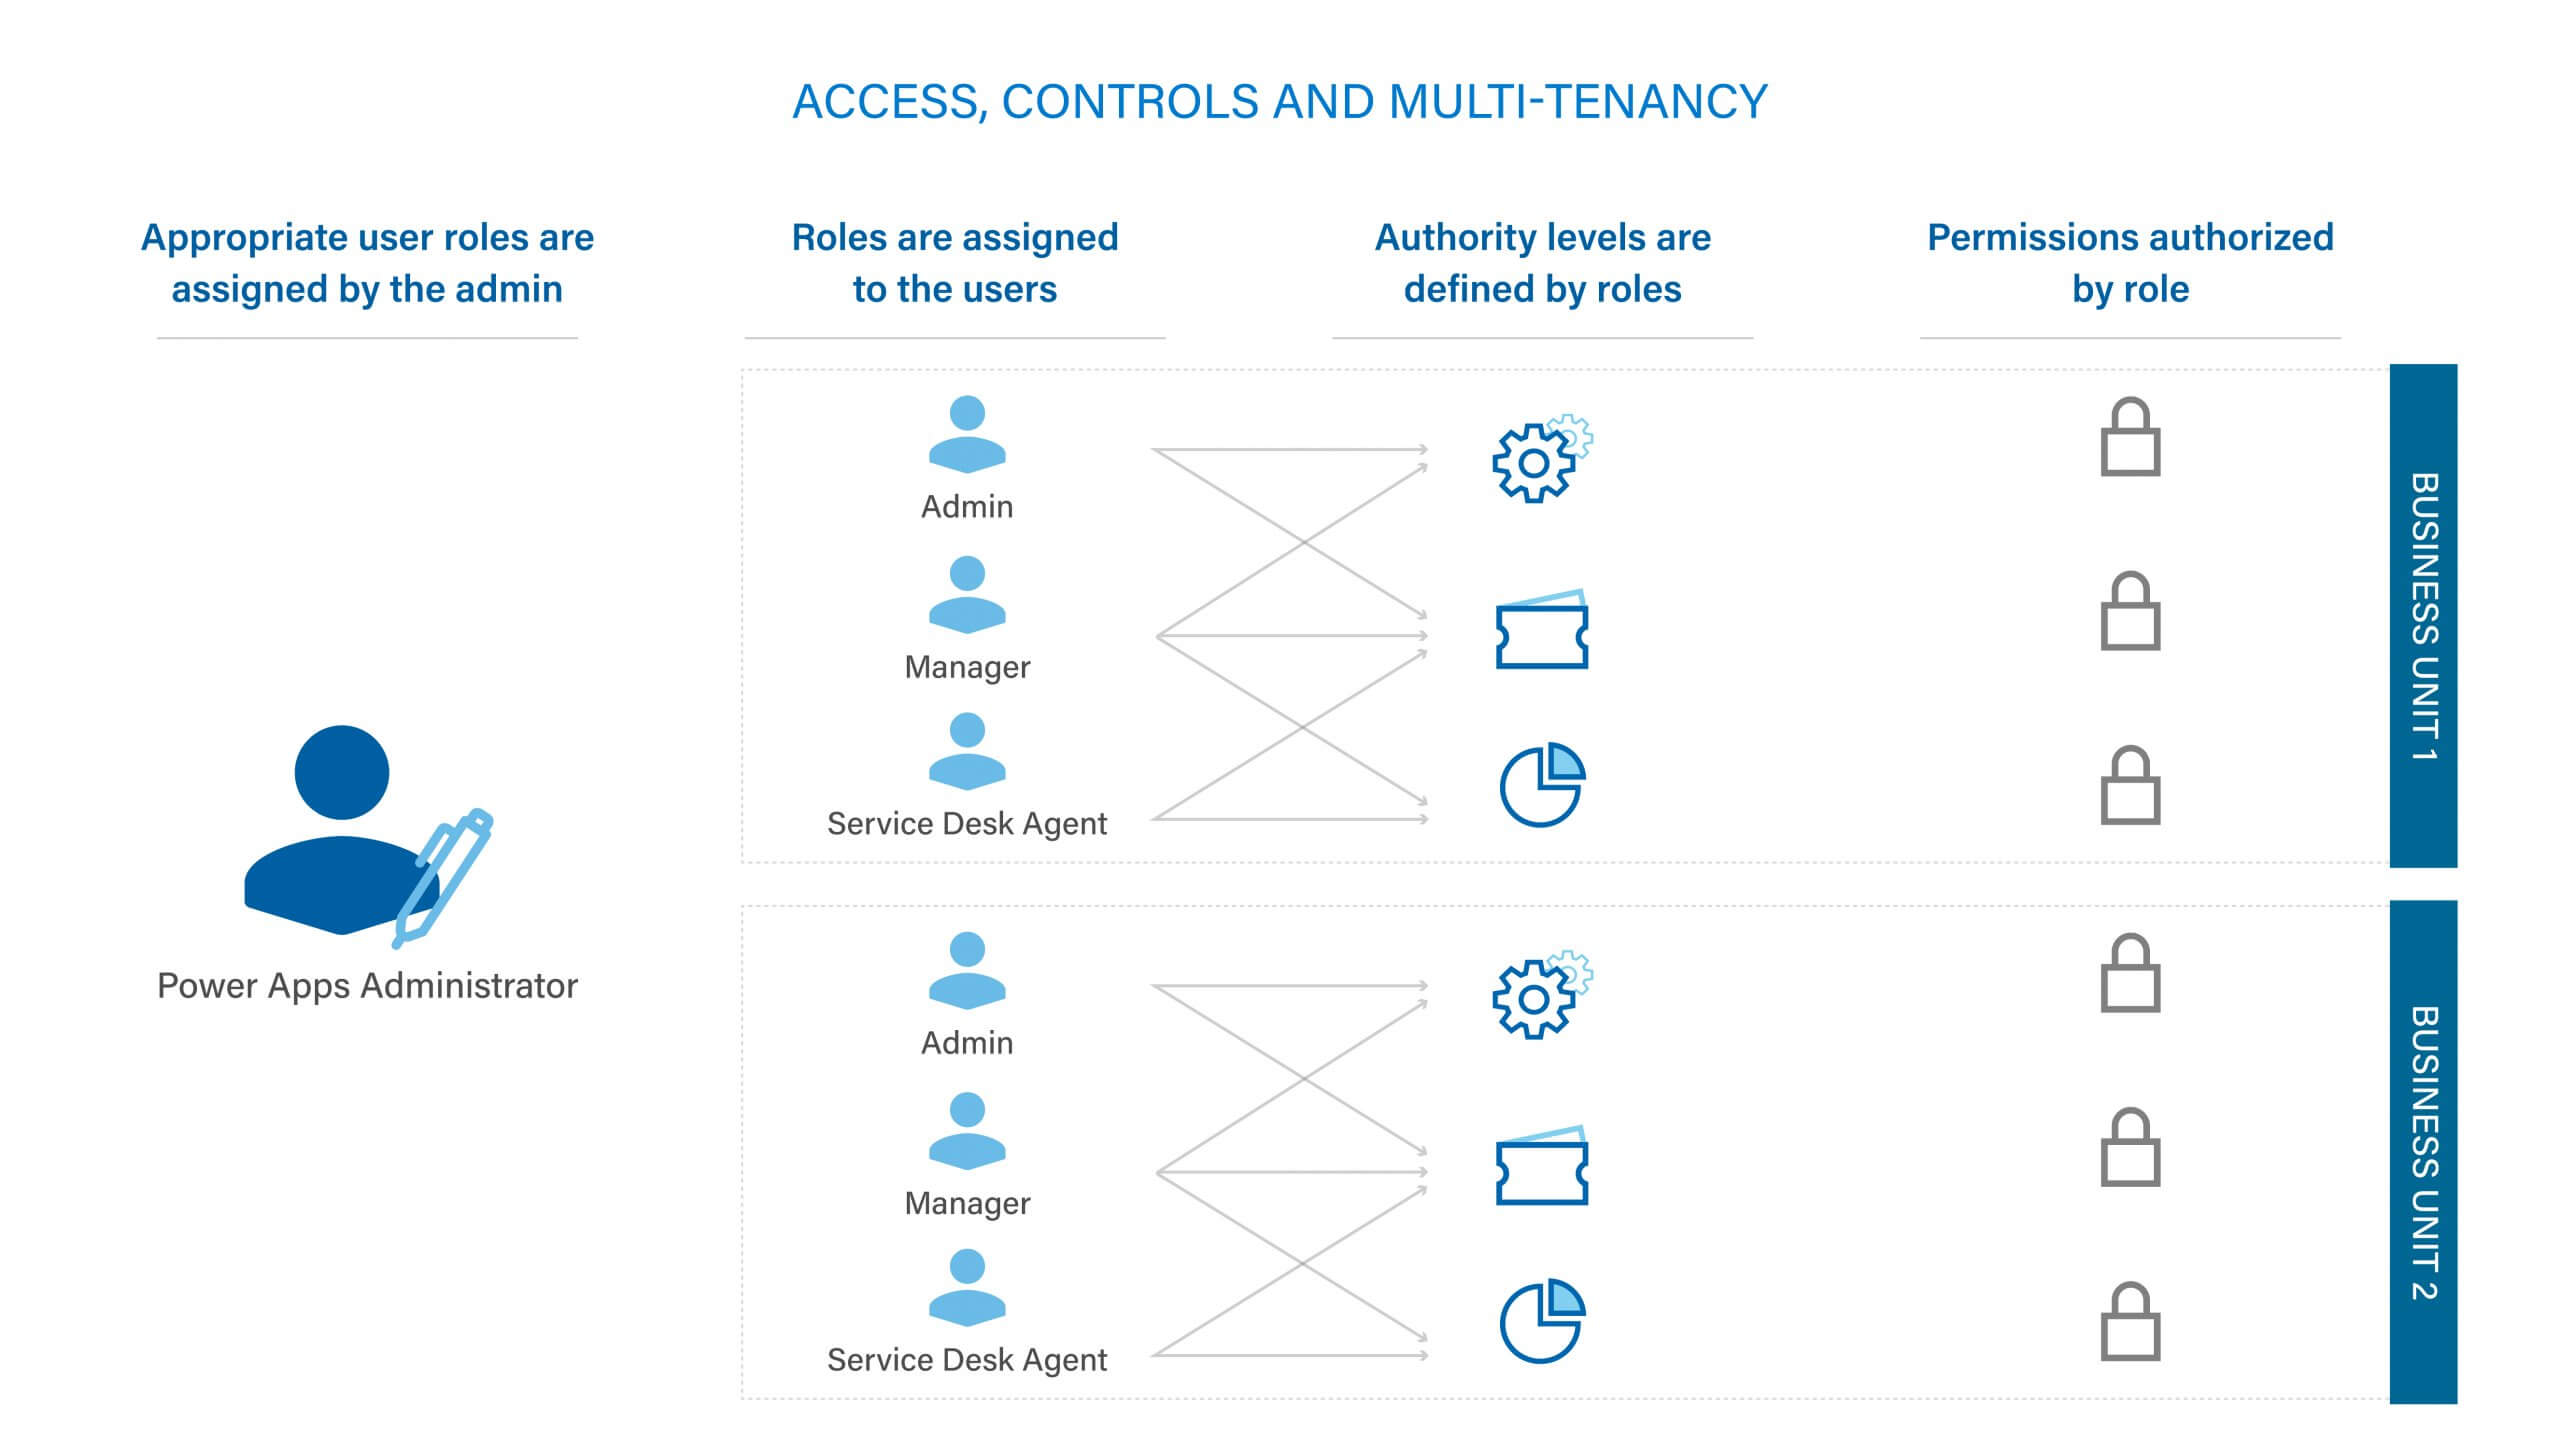 Access, Controls and Multi-tenancy